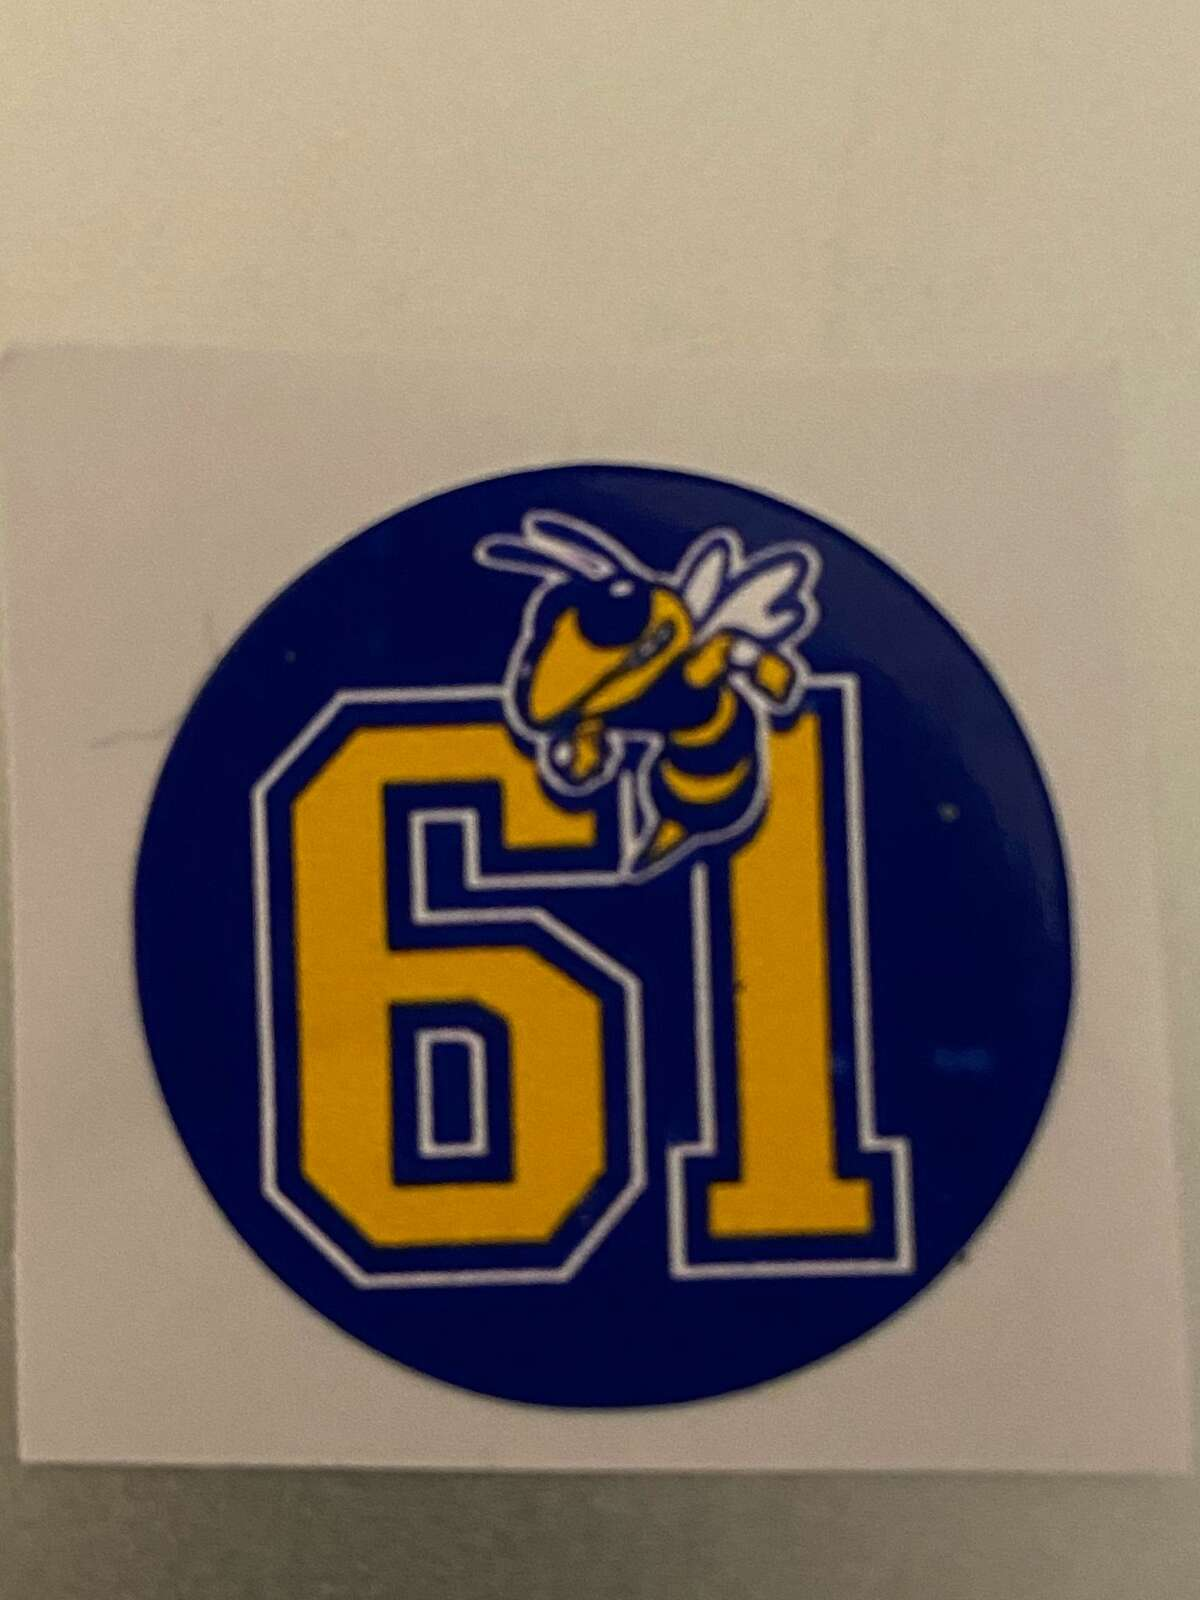 The 1961 Carver Hornets decal being worn on the Lee football helmets this season. The Hornets won the 1961 Prairie View Interscholastic League Class 3A state championship, in the first in Midland history by a high school football team.